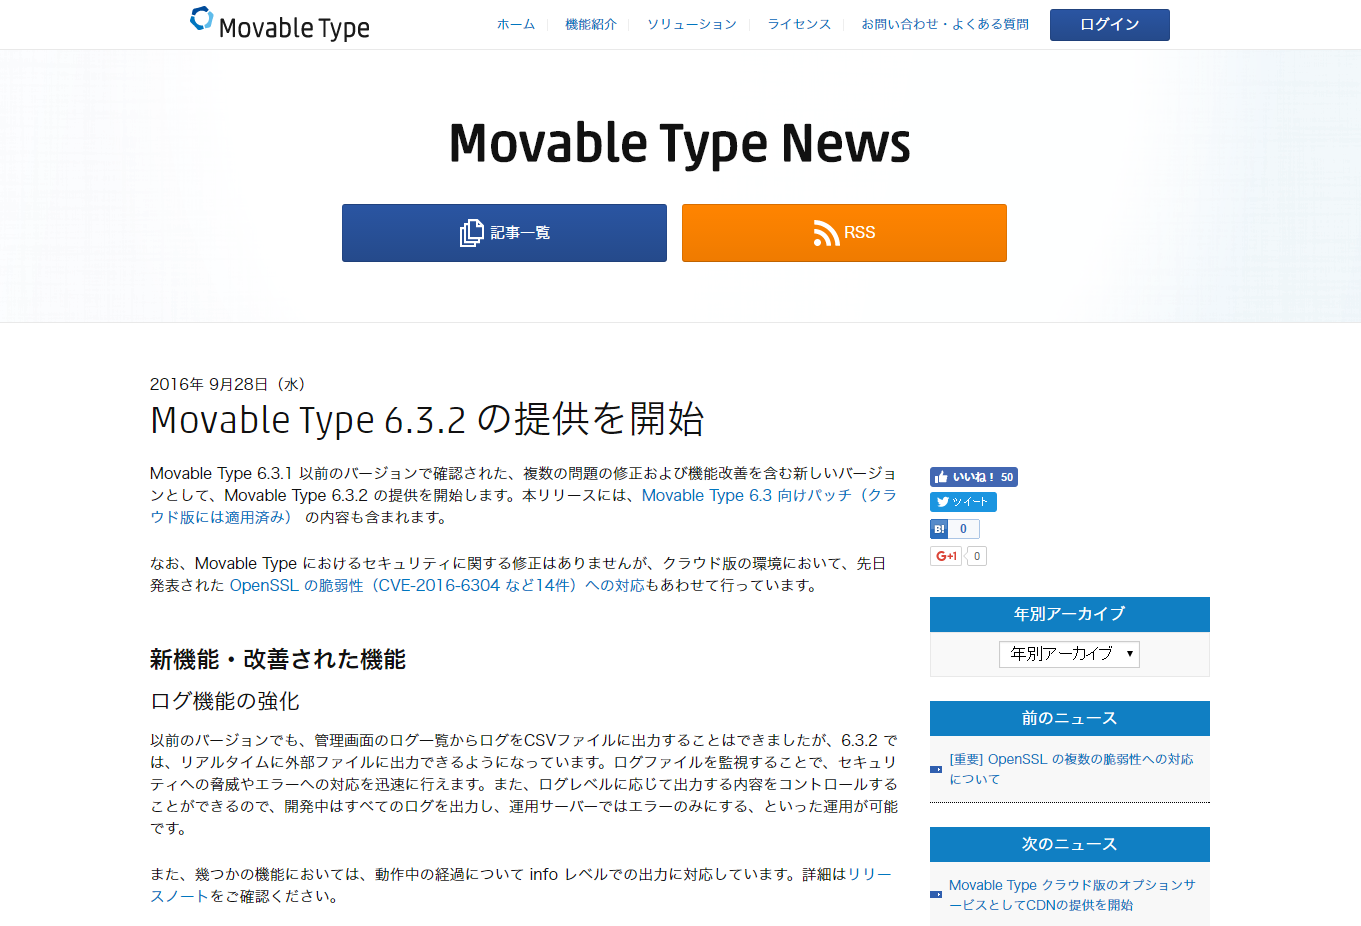 Movable Type 6.3.2 リリース